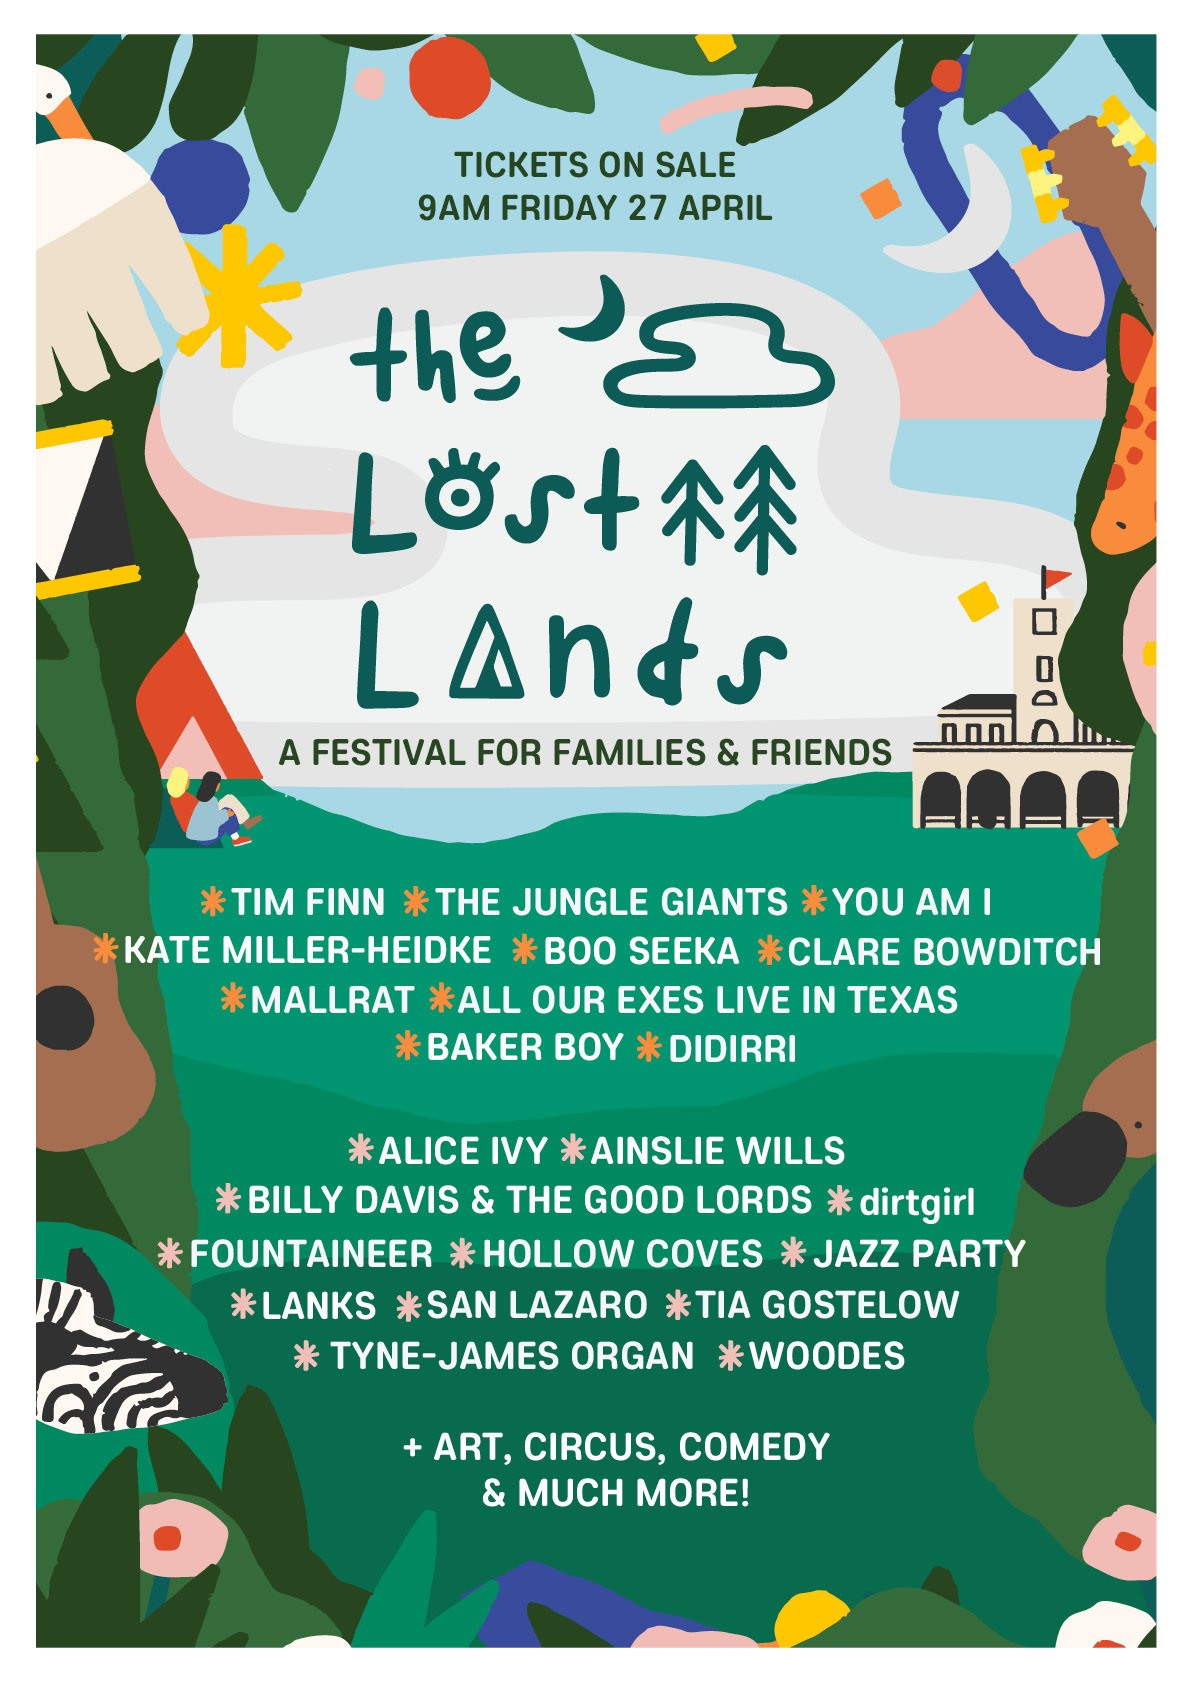 The Lost Lands 2018 Music line up